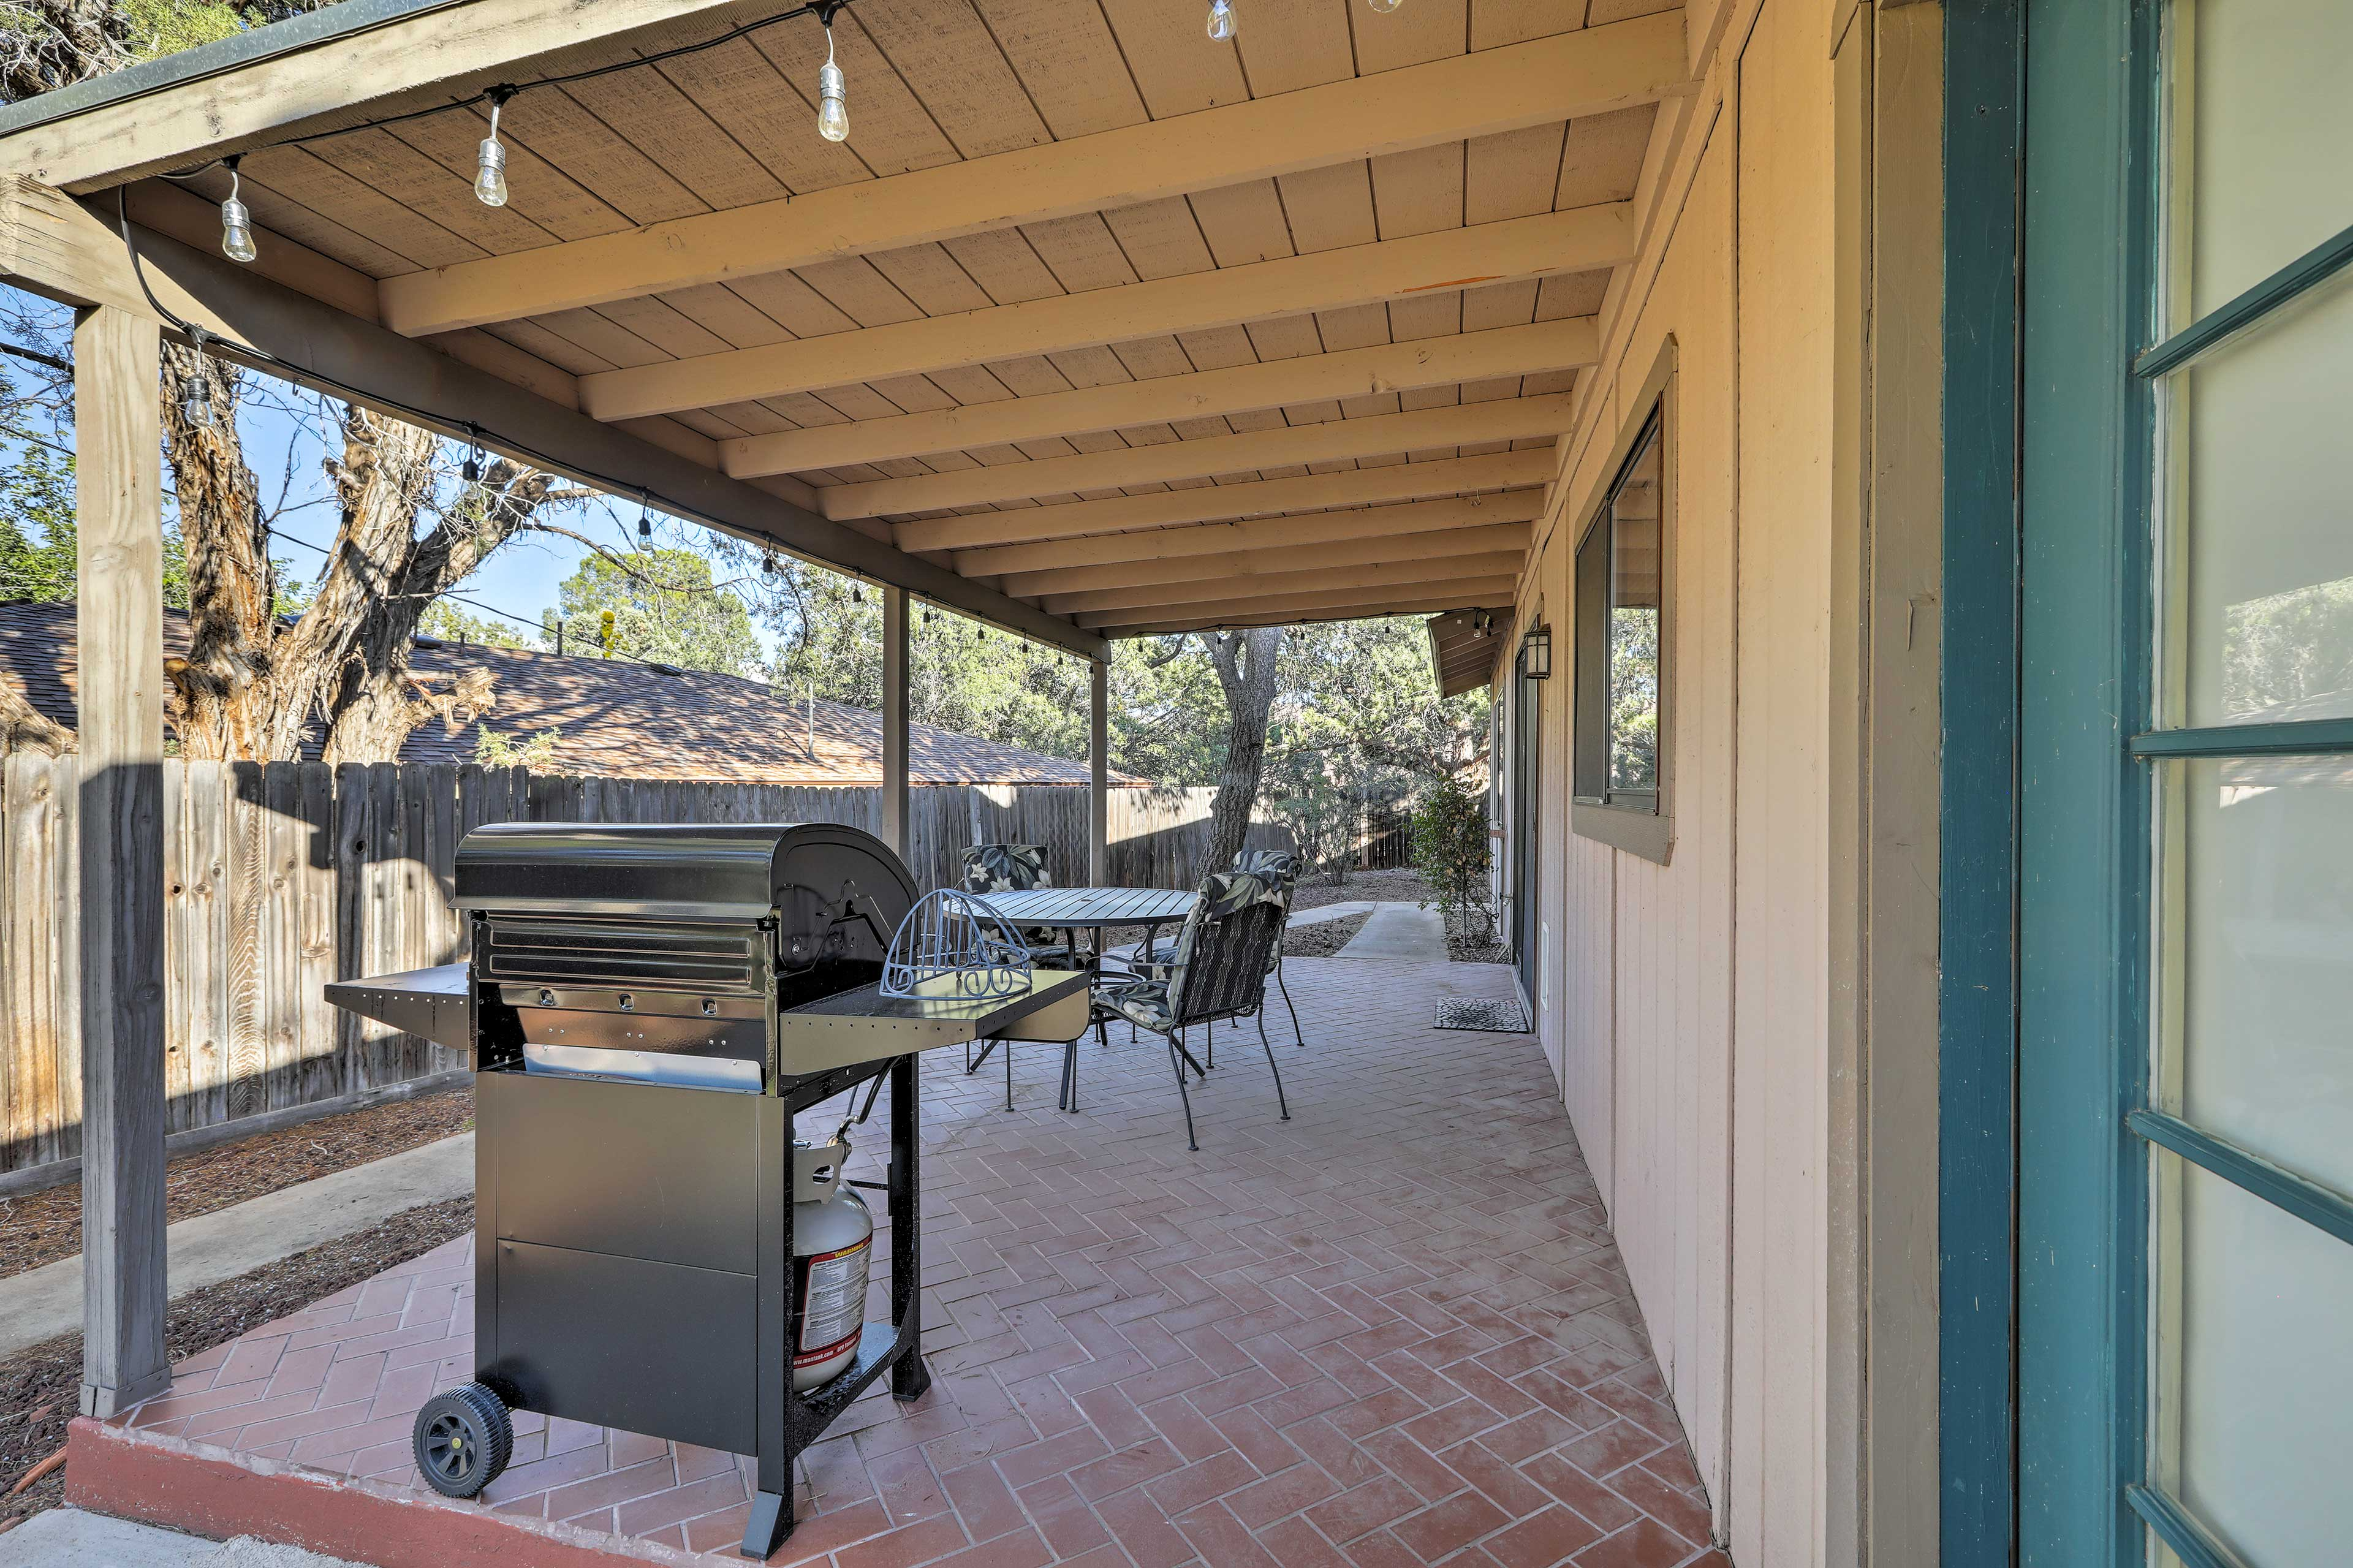 Fire up the gas grill for a barbecue dinner!